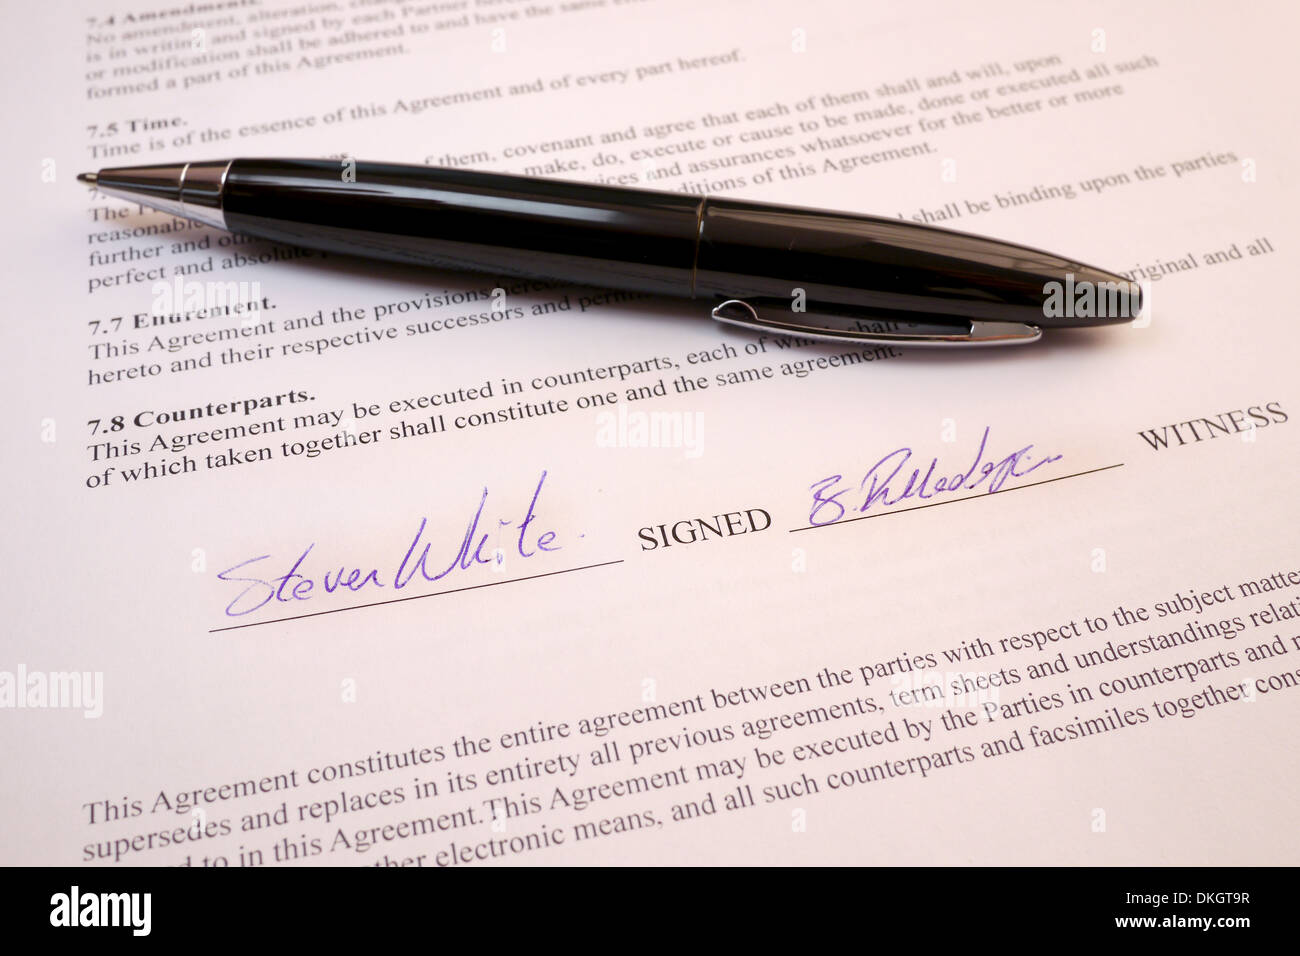 signatures on legal document - Stock Image